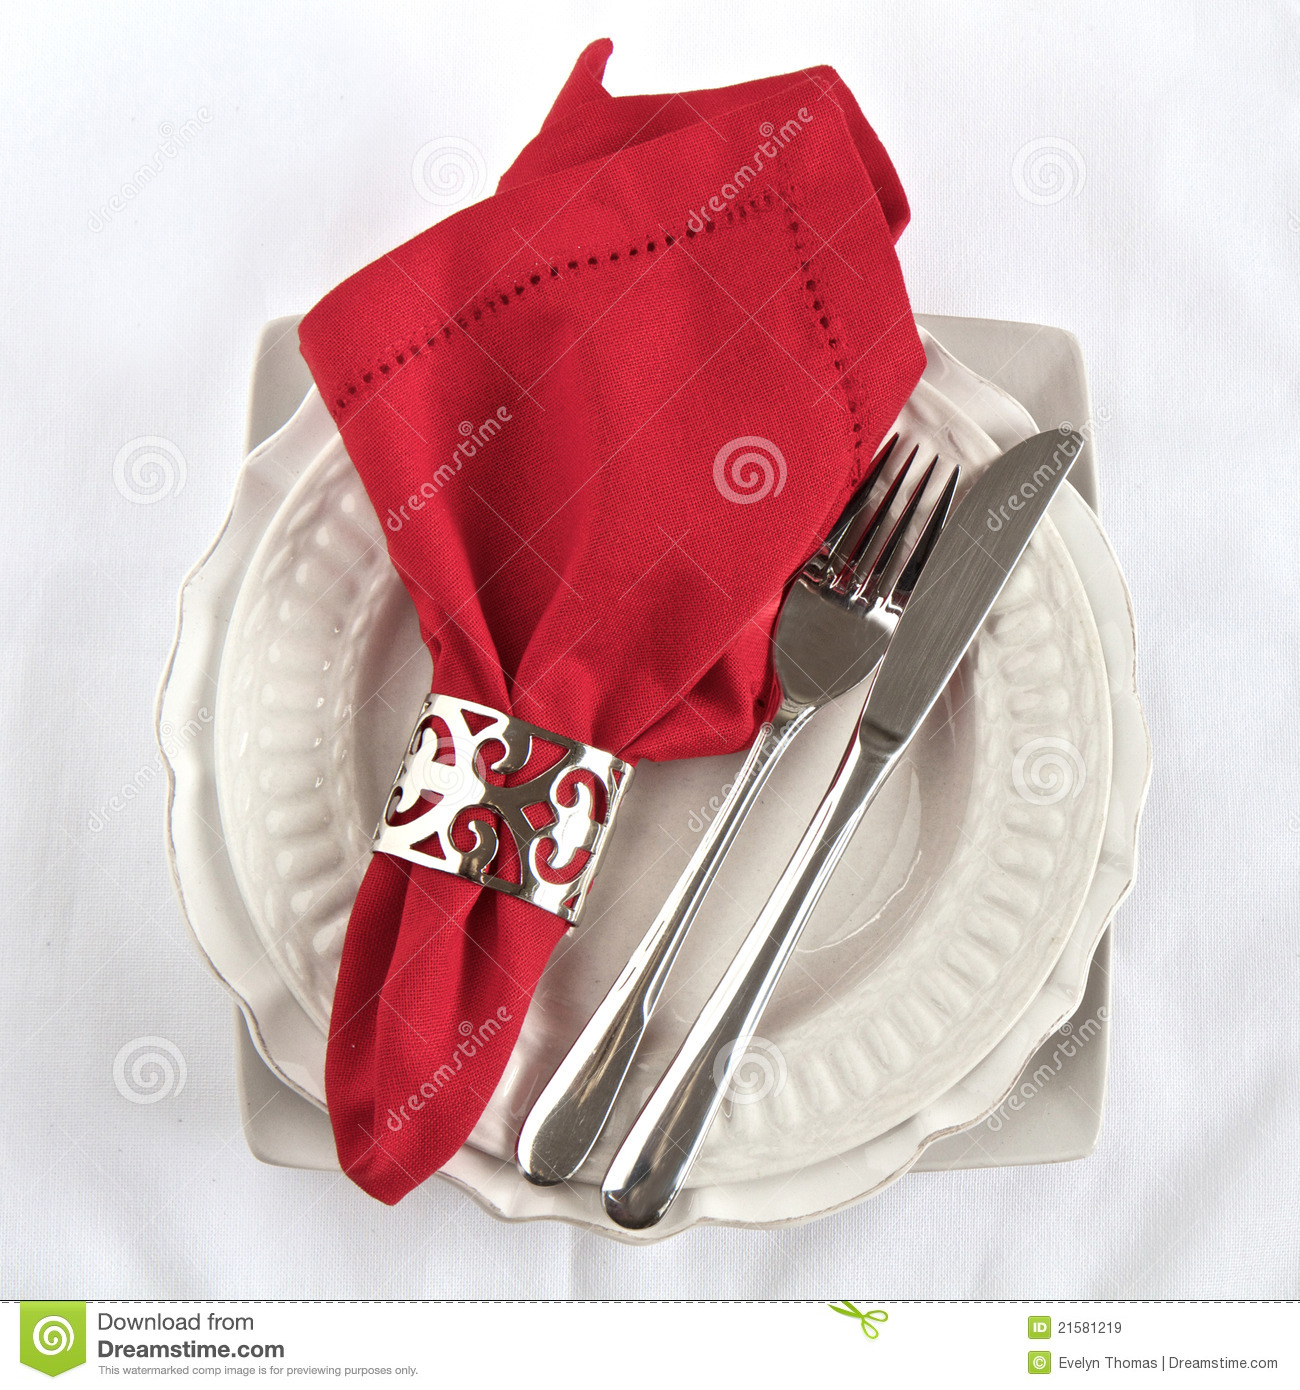 Silverware As A Table Setting With Red Napkin Royalty Free Stock Images Image 21581219